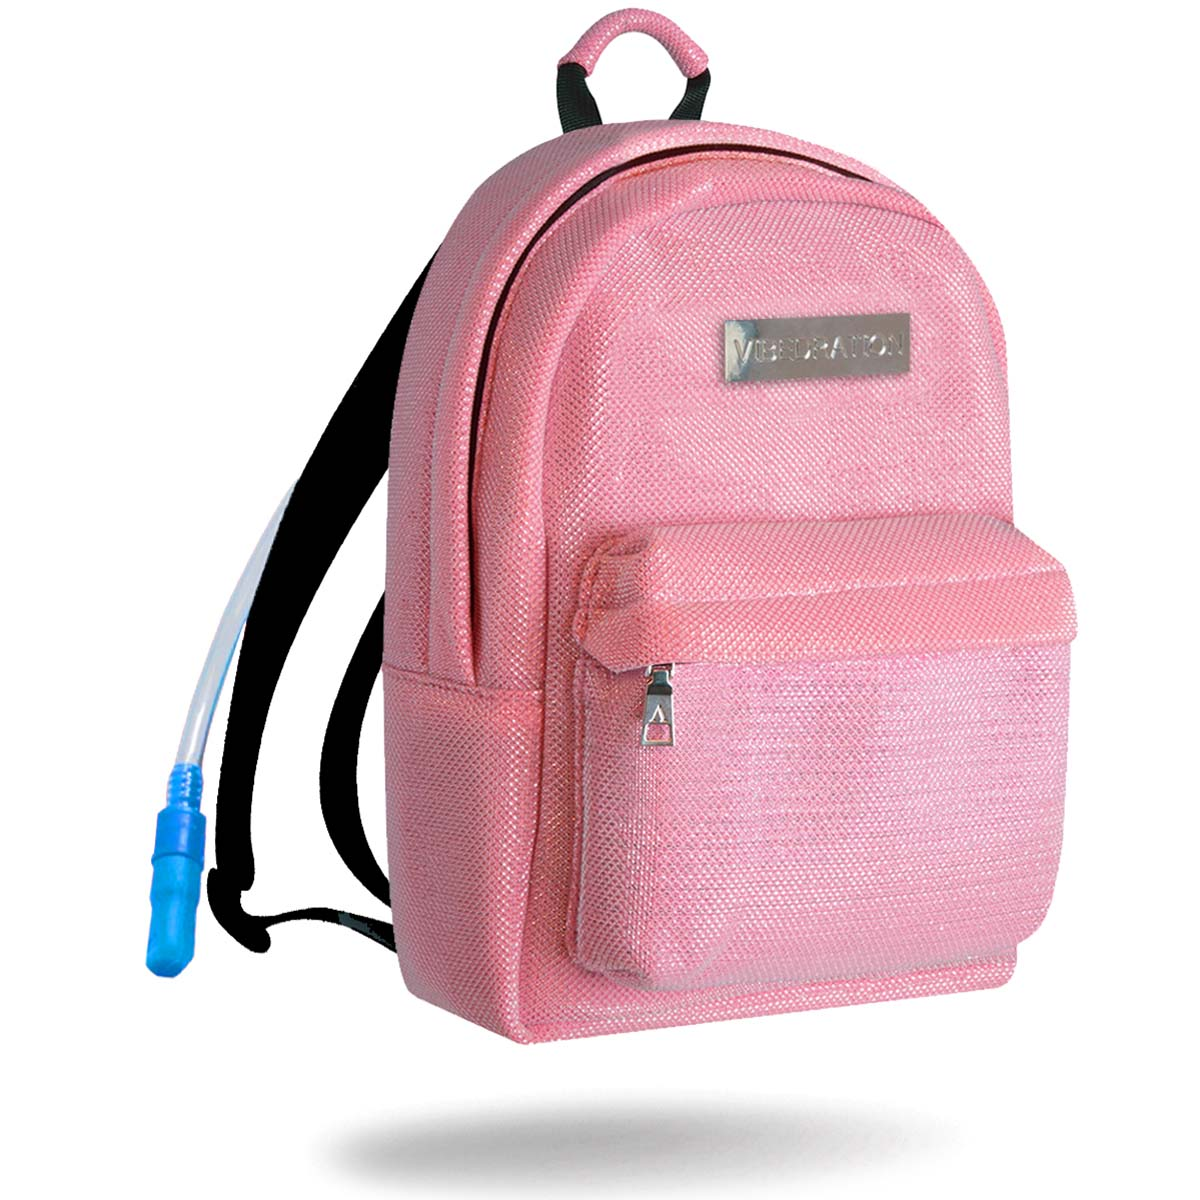 Kotton kandi pink water backpack with rainbow zippers and silver logo plate.